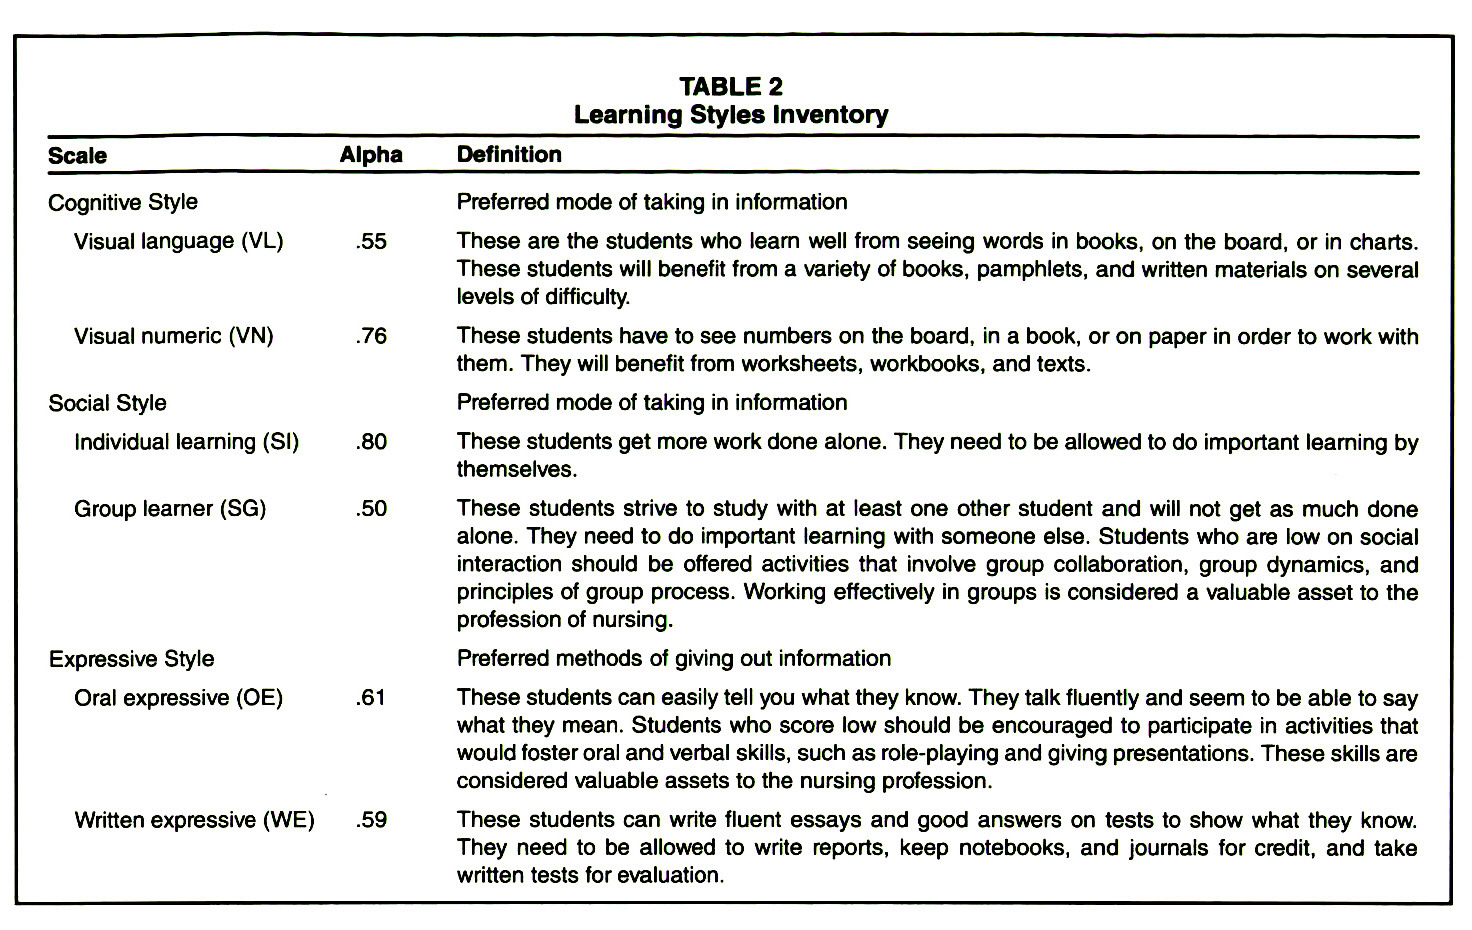 TABLE 2Learning Styles Inventory